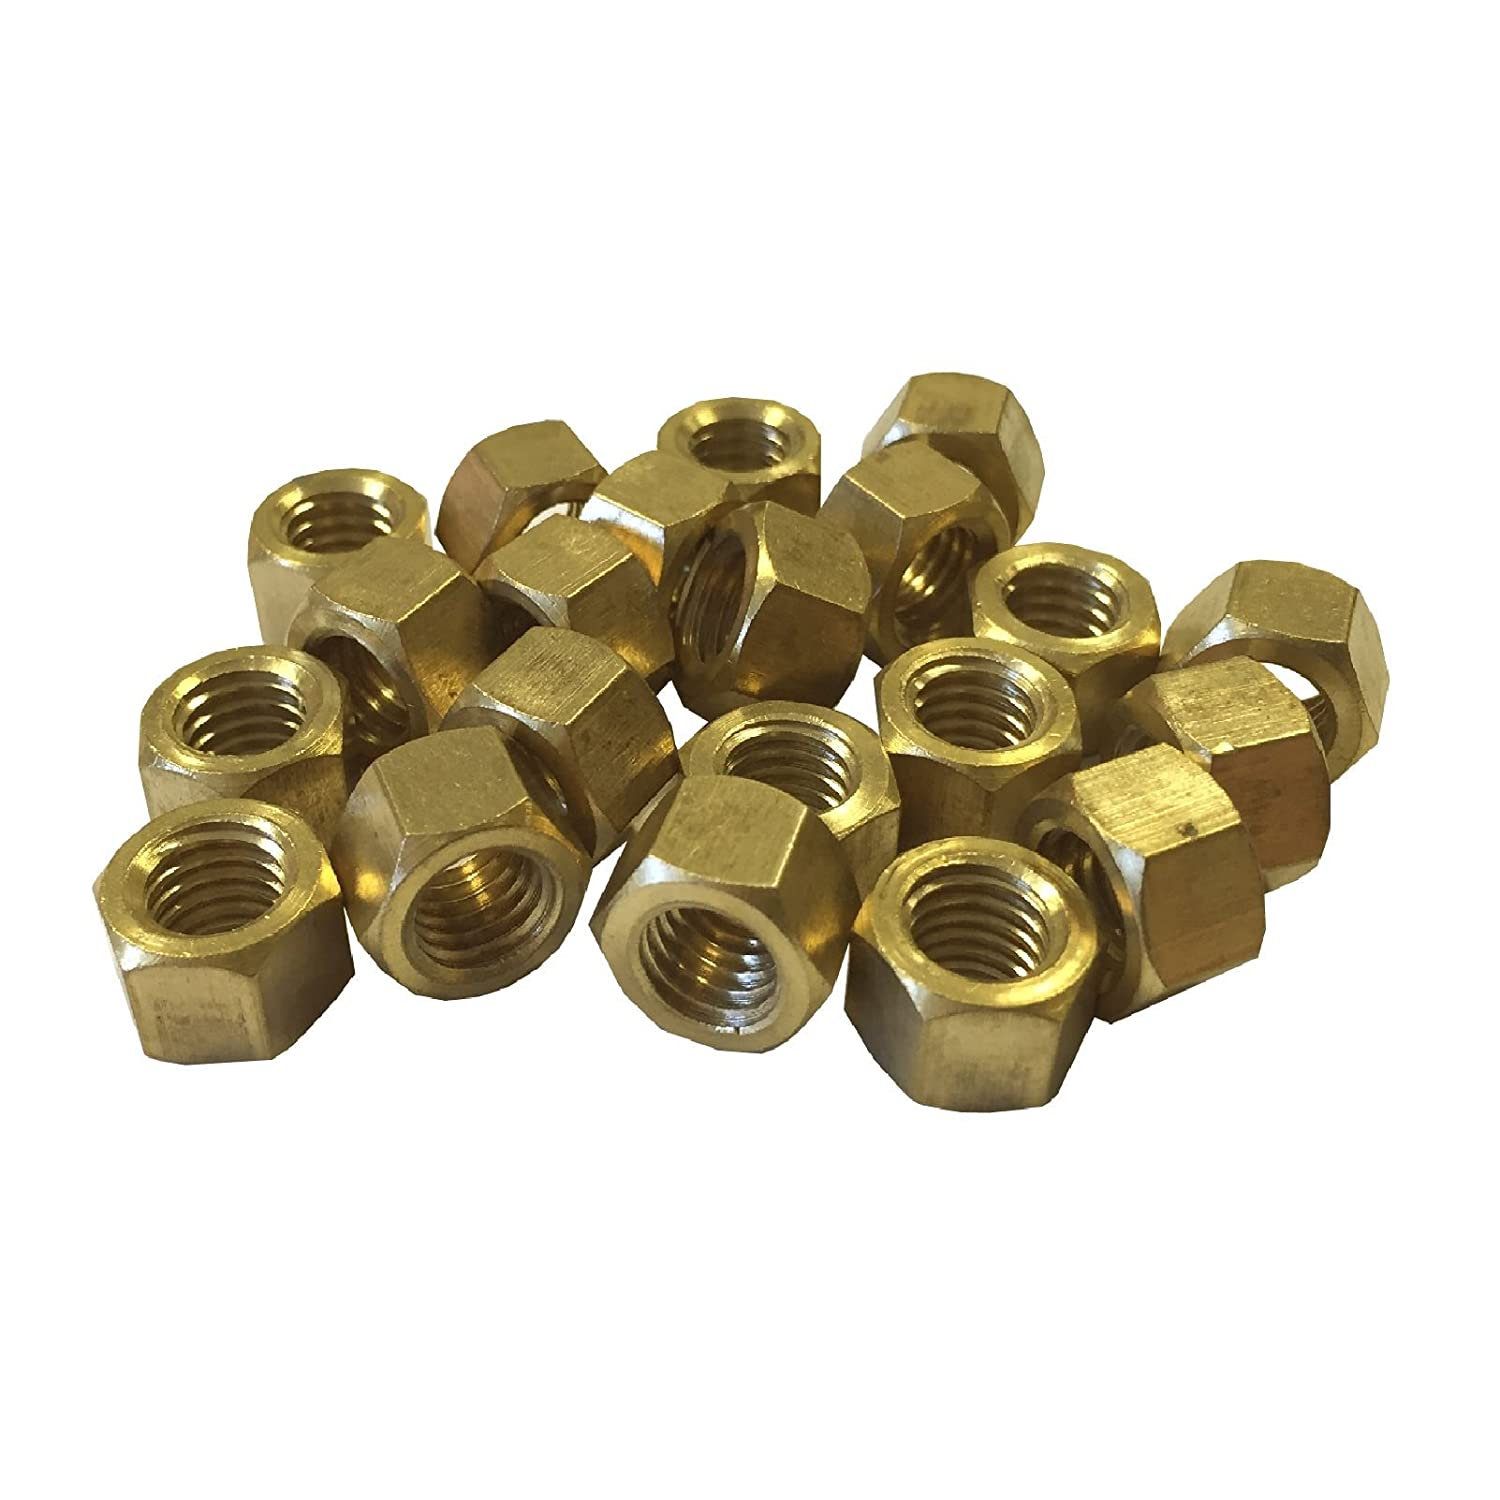 Smarthome 8 x Brass Exhaust Imperial Manifold Nuts 5//16 UNC High Temperature